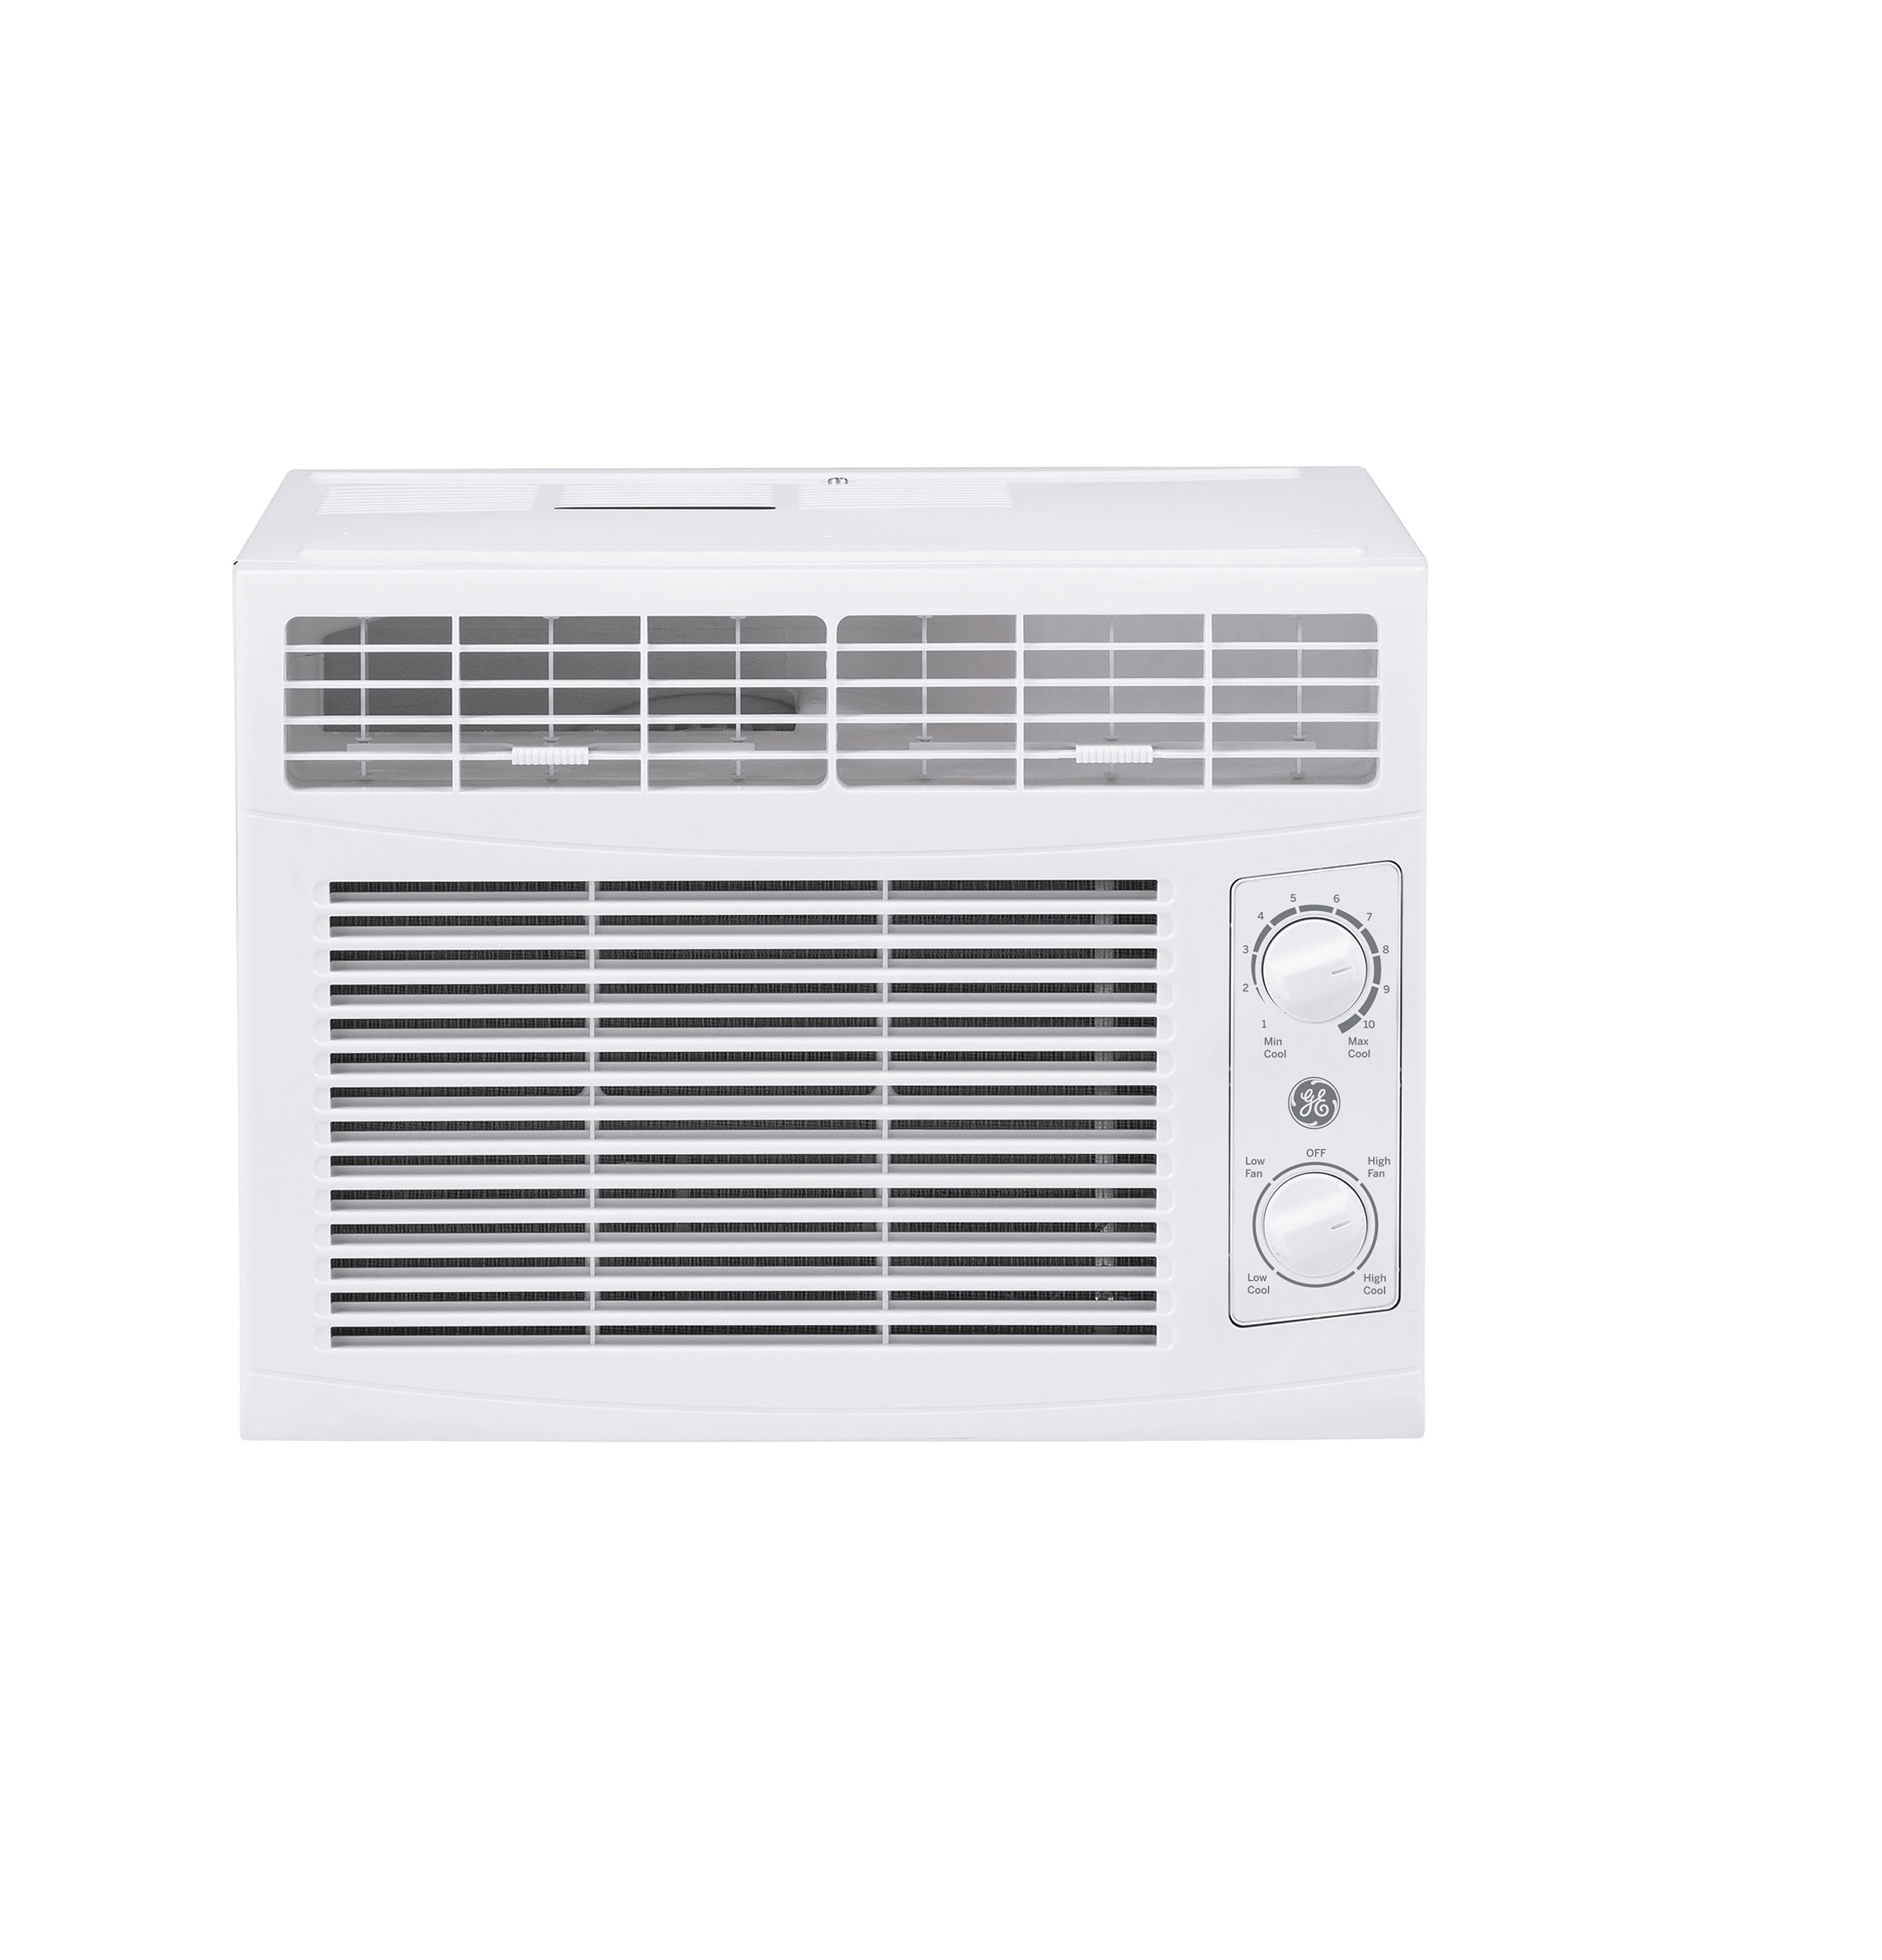 GE GE® 5,050 BTU Mechanical Window Air Conditioner for Small Rooms up to 150 sq. ft.